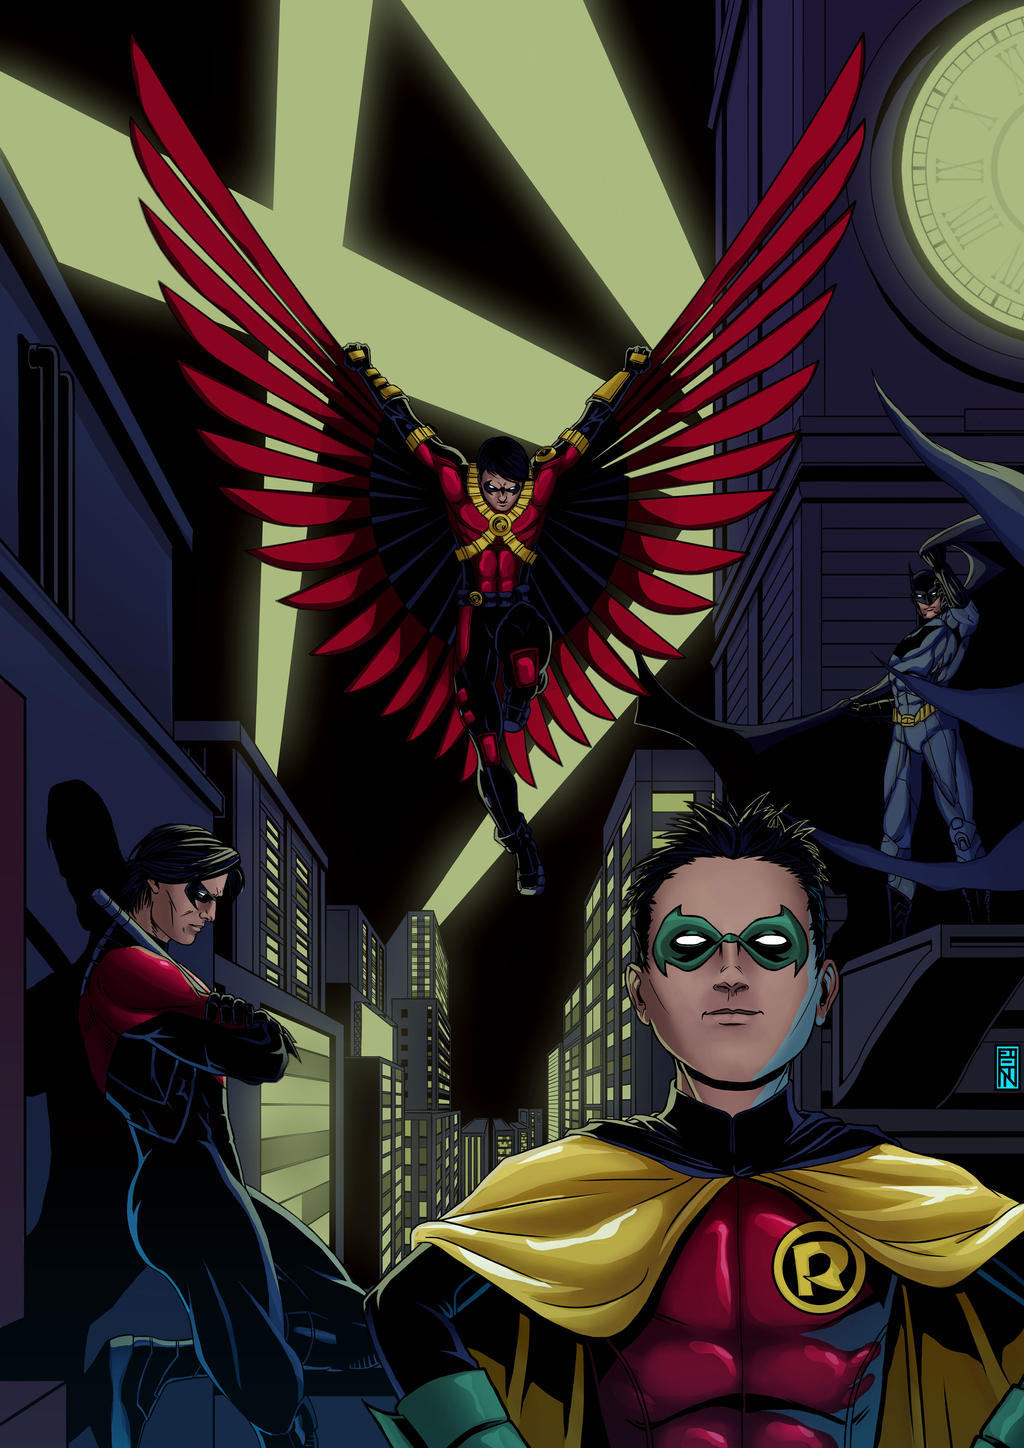 Rascunhos do Broo Batsquad___colors_by_brooparker-d8rerx0